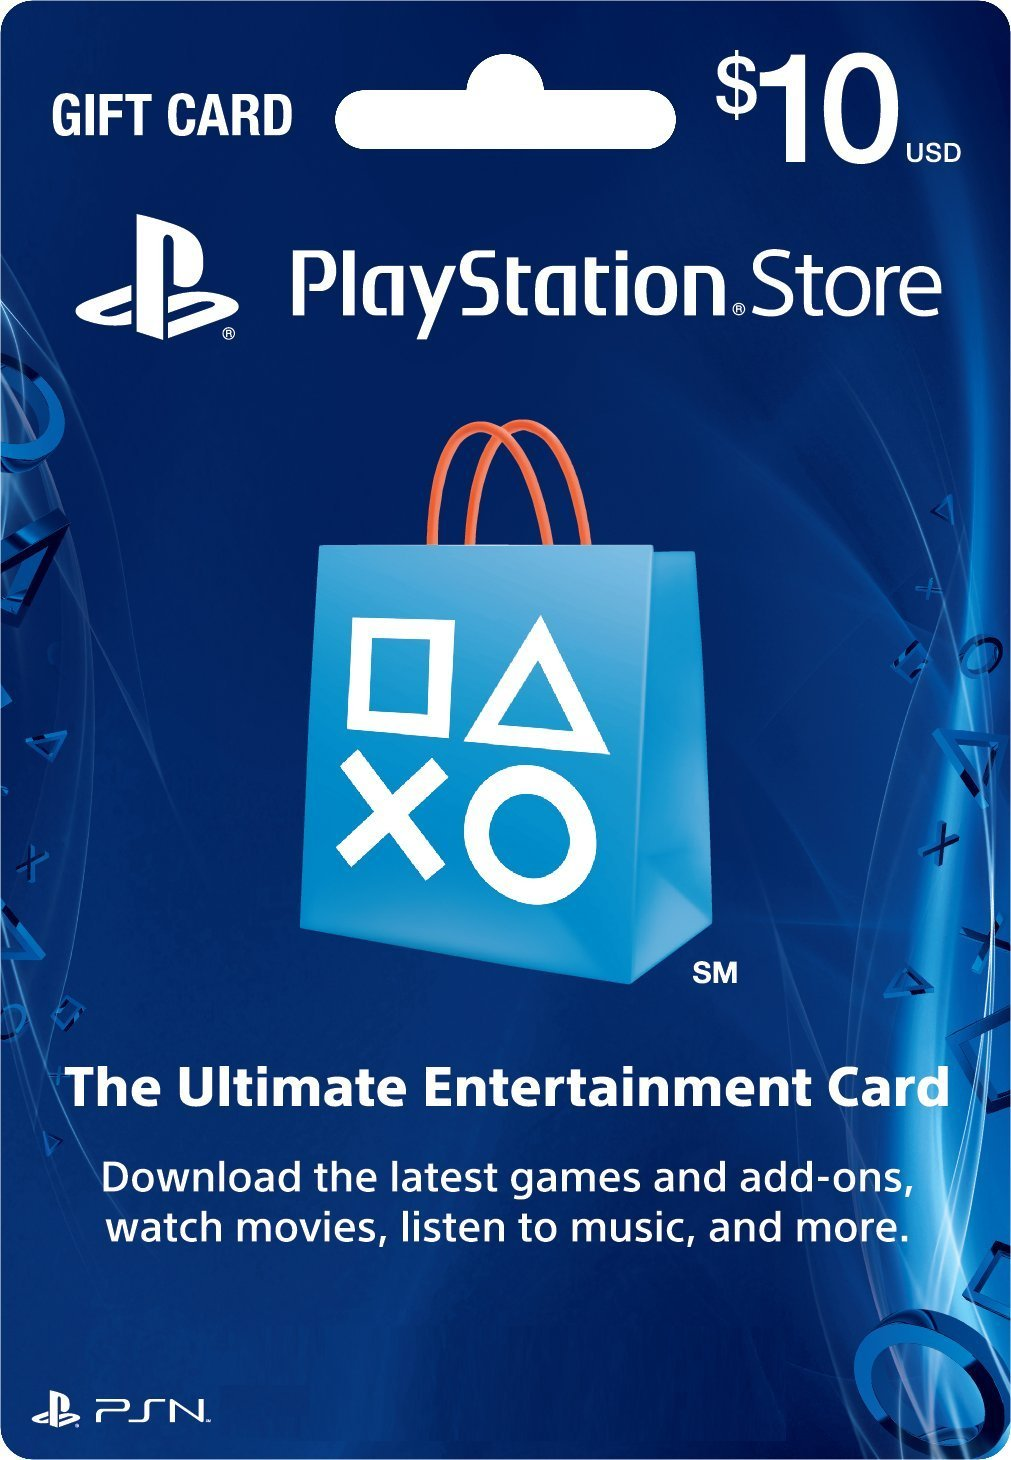 PSN Gift Card Code USA $ 10 for the PS4, PS3, PS Vita